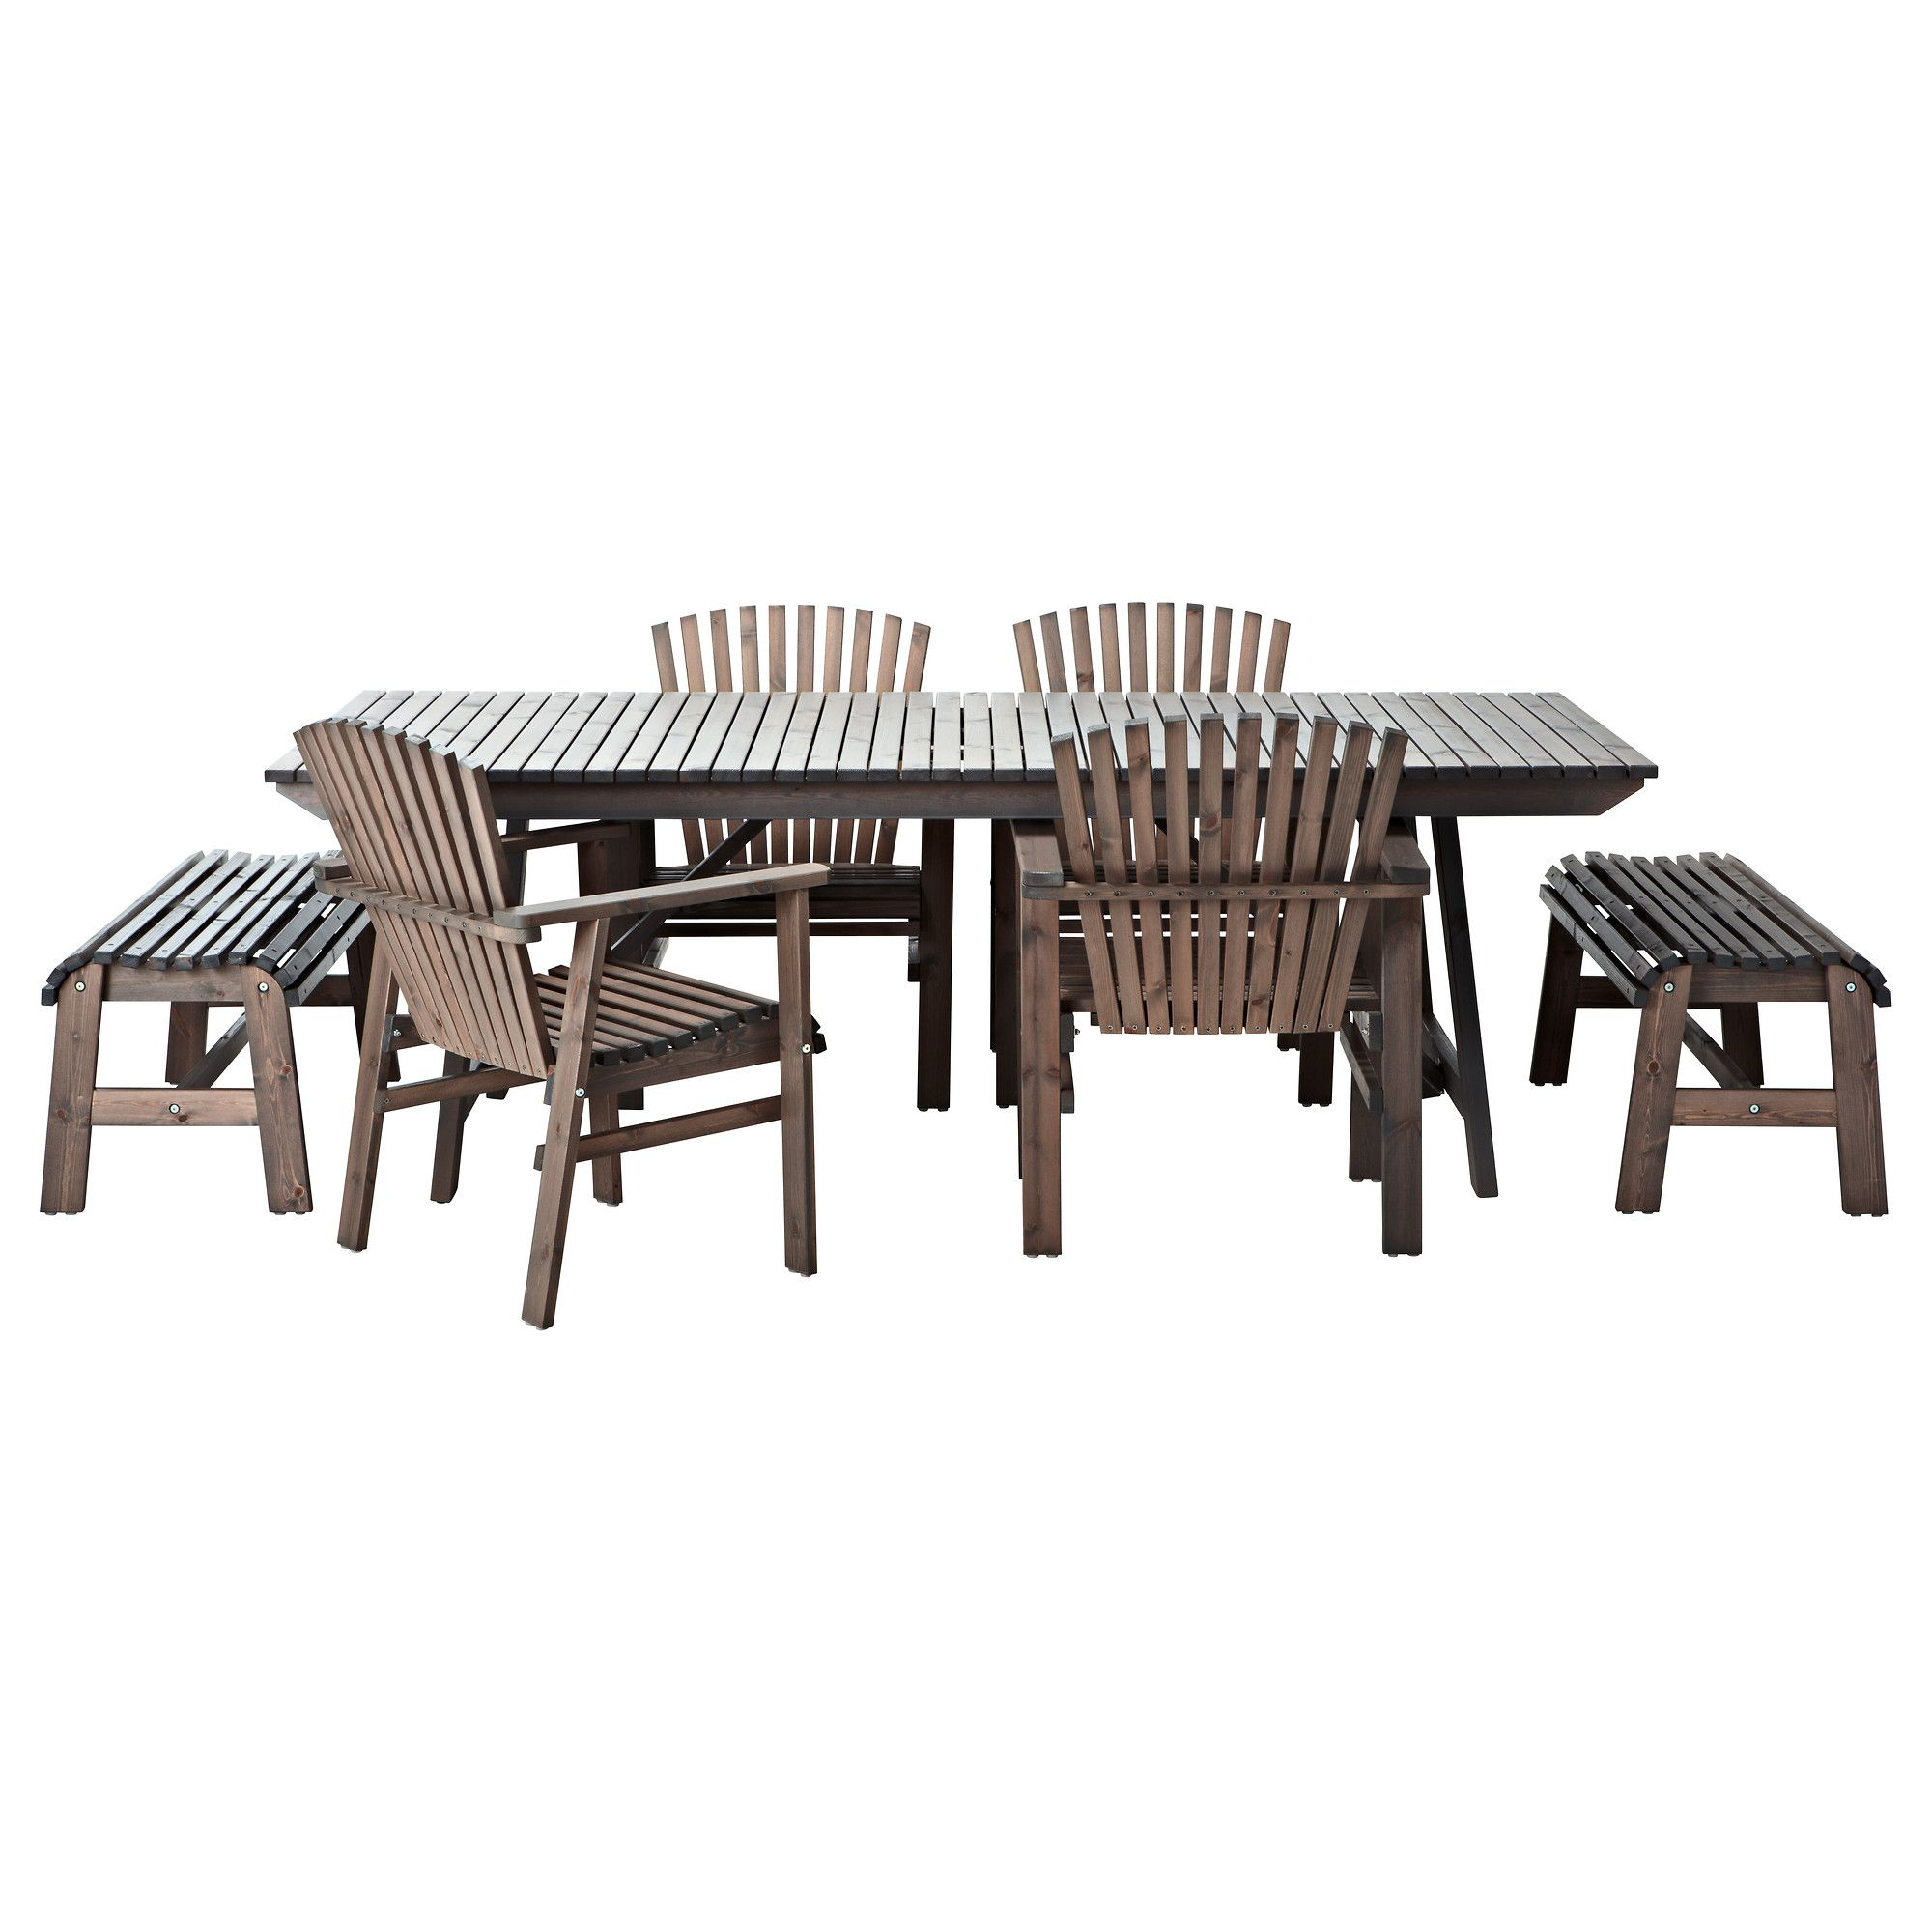 Terrific Us Furniture And Home Furnishings Outdoor Dining Inzonedesignstudio Interior Chair Design Inzonedesignstudiocom